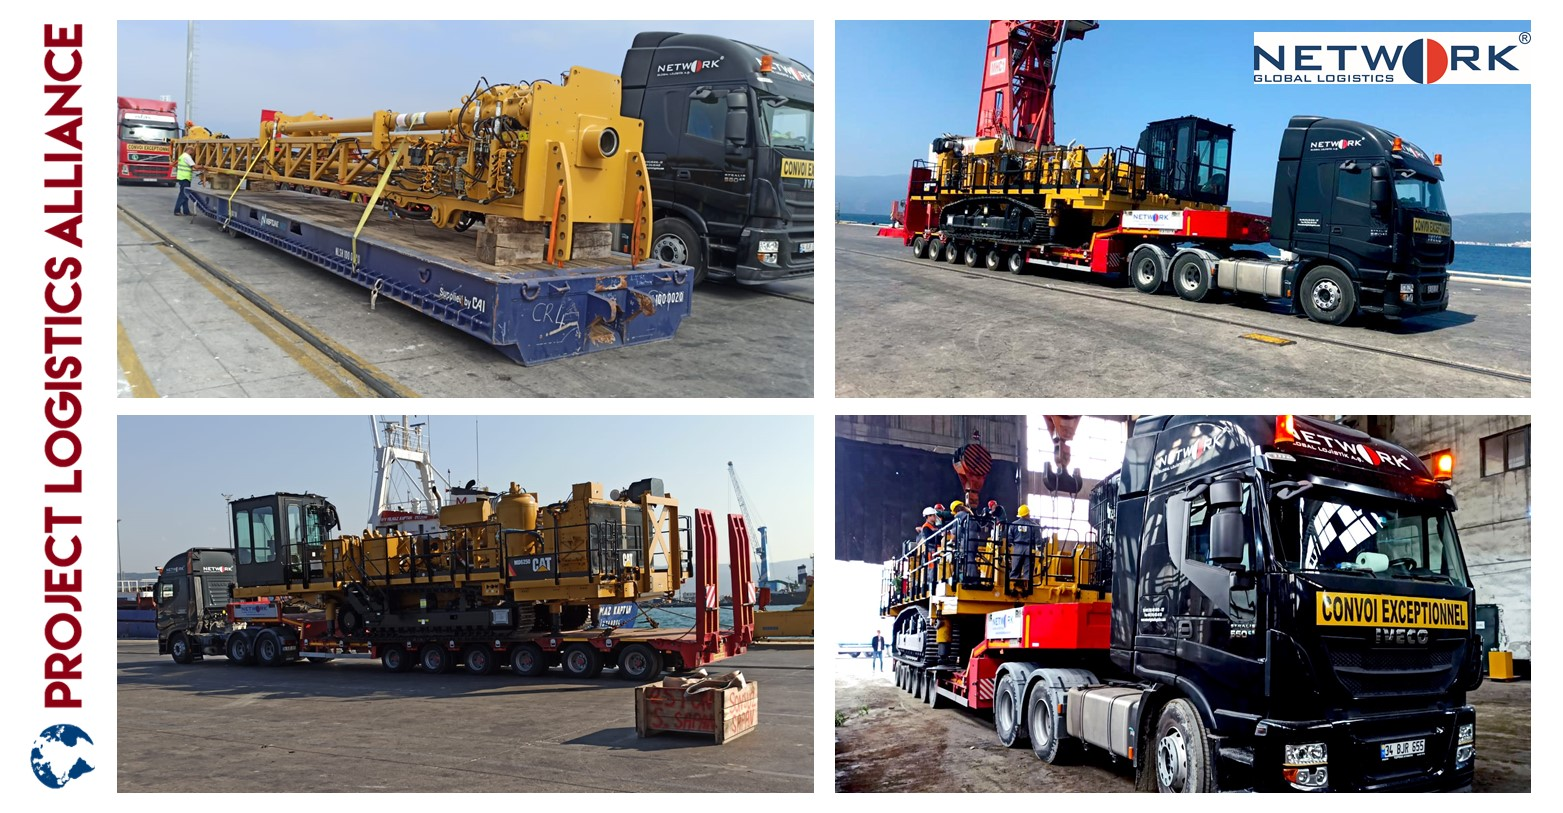 Network Global Logistics Delivers Caterpillar MD6250 From The USA To Bulgaria